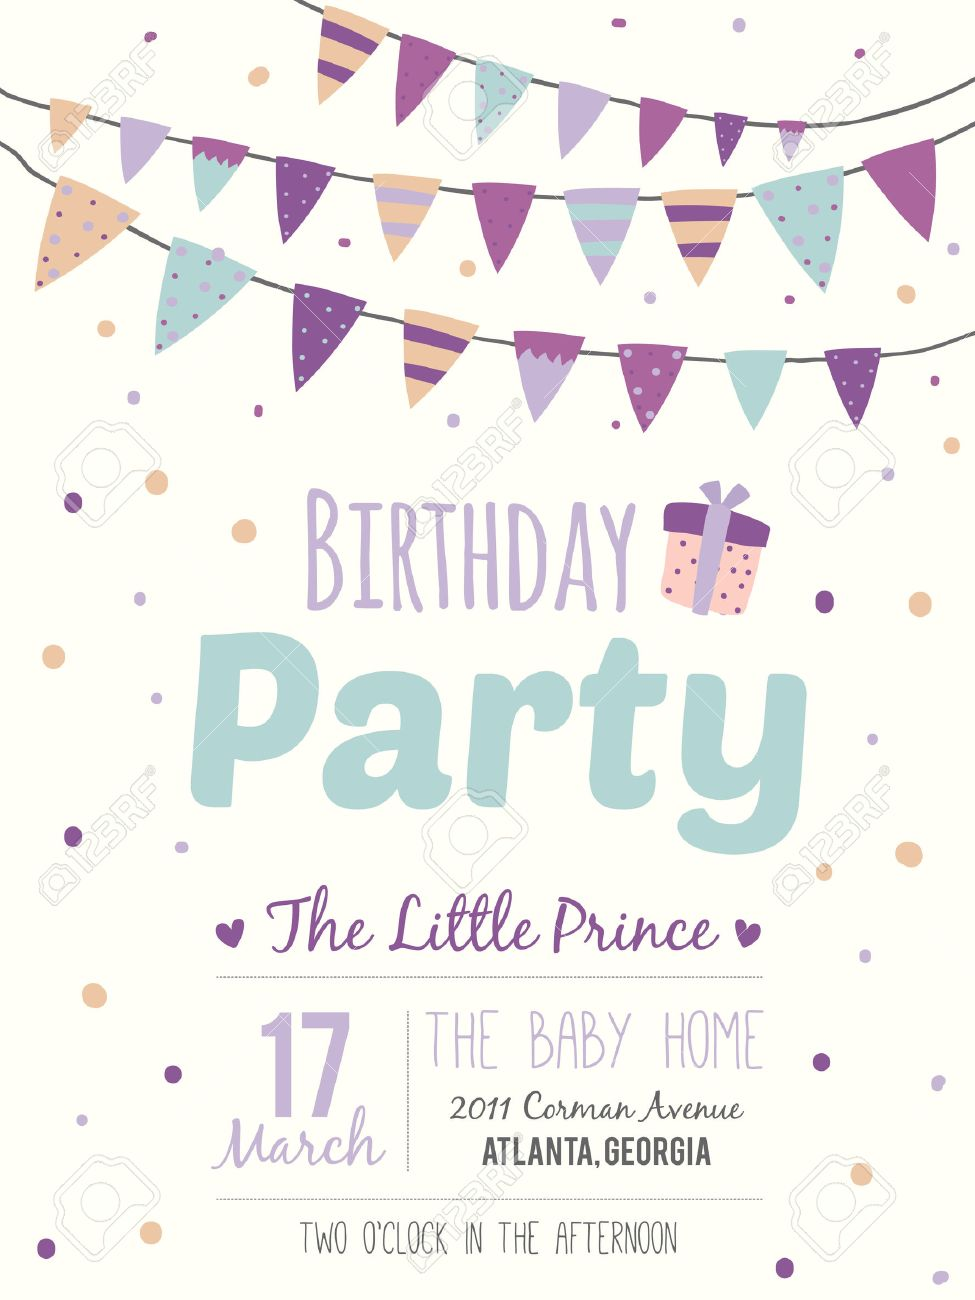 happy birthday poster designs ; 40500388-unusual-inspirational-romantic-and-motivational-quotes-invitation-card-stylish-happy-birthday-poster-Stock-Photo